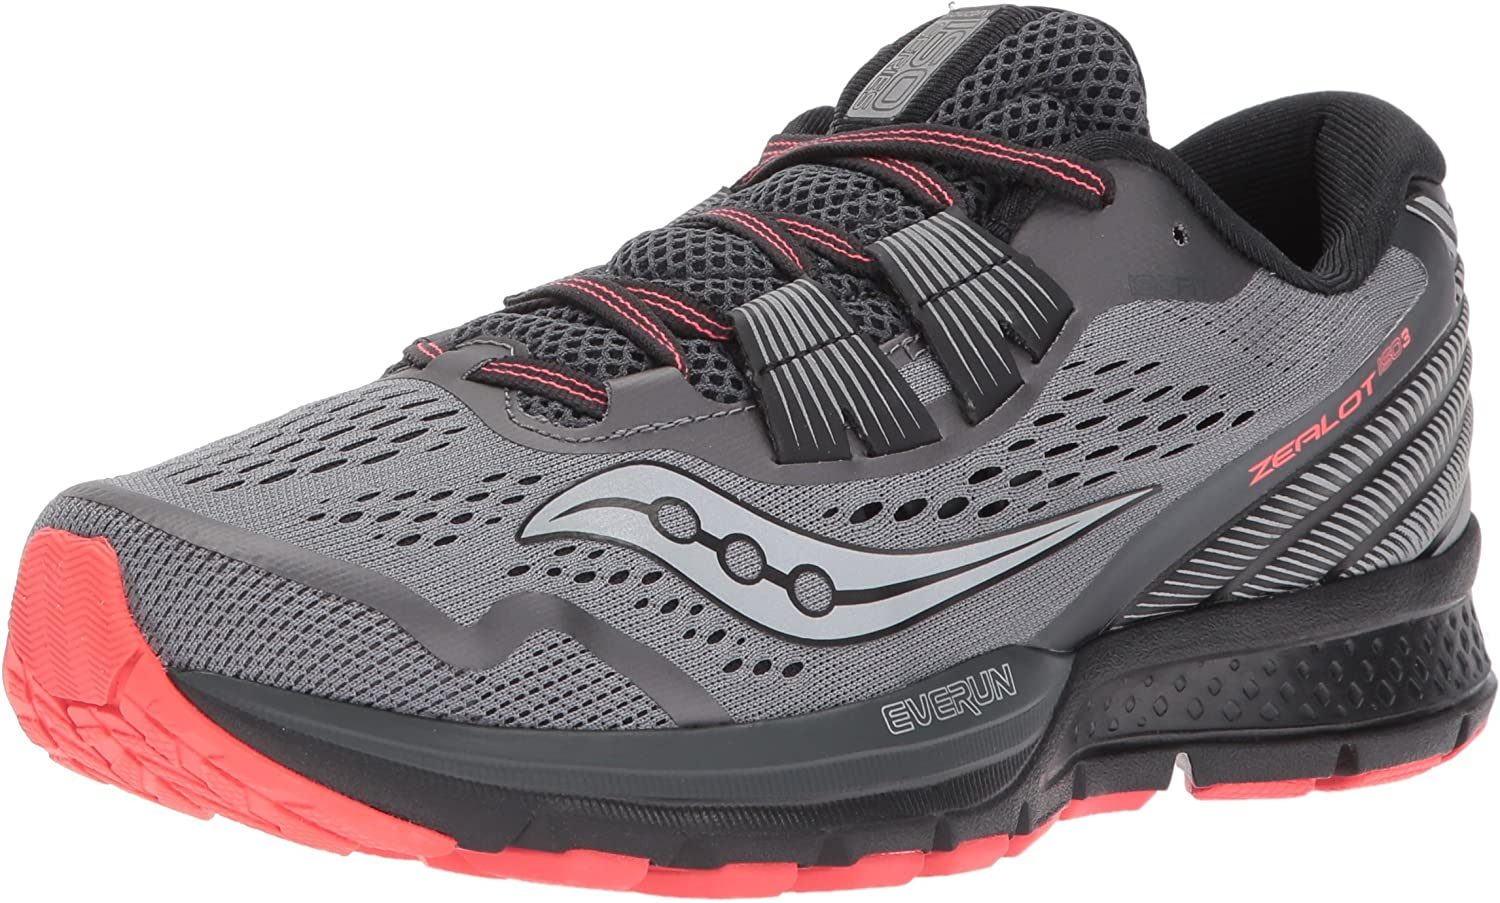 Saucony Women's Bargain sale Zealot Iso Inventory cleanup selling sale 3 Shoe Running